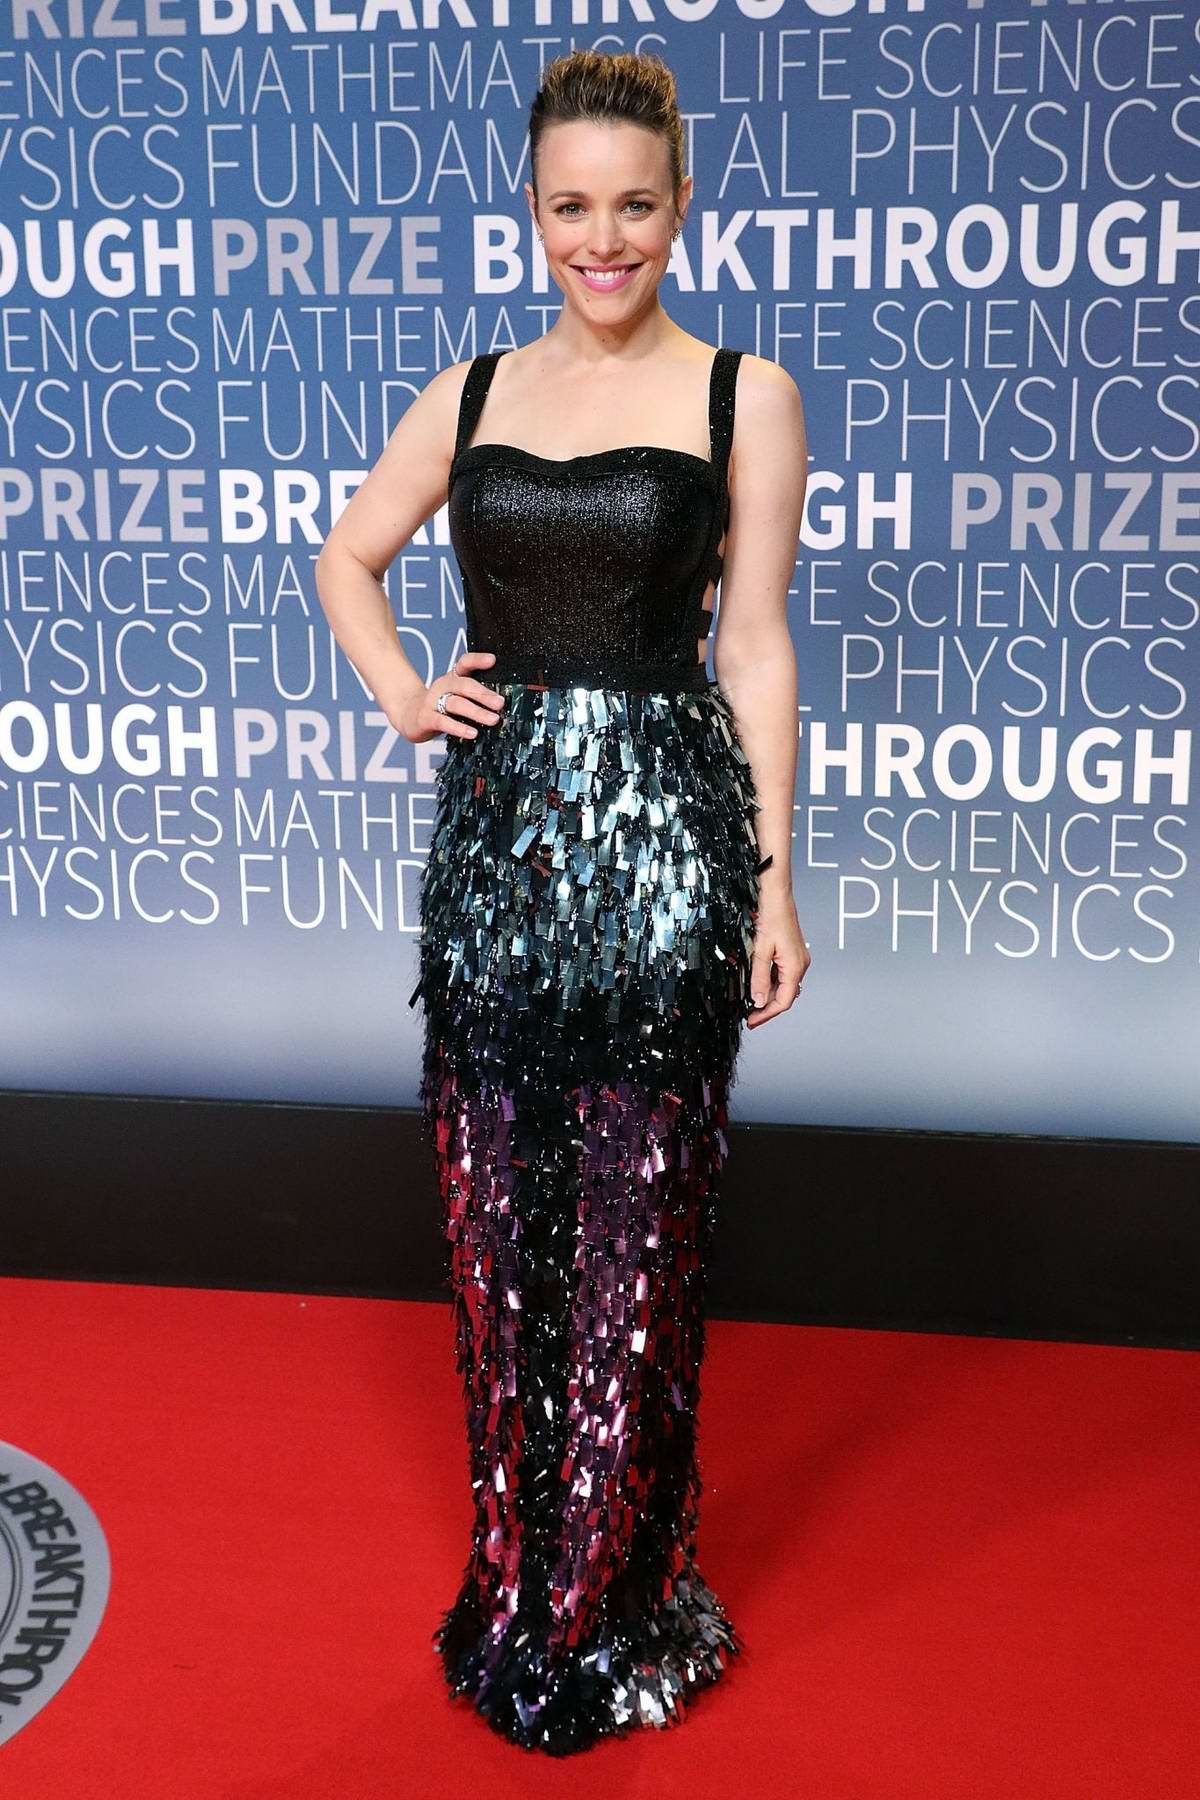 Rachel McAdams attends the 7th Annual Breakthrough Prize Ceremony at NASA Ames Research Center in Mountain View, California